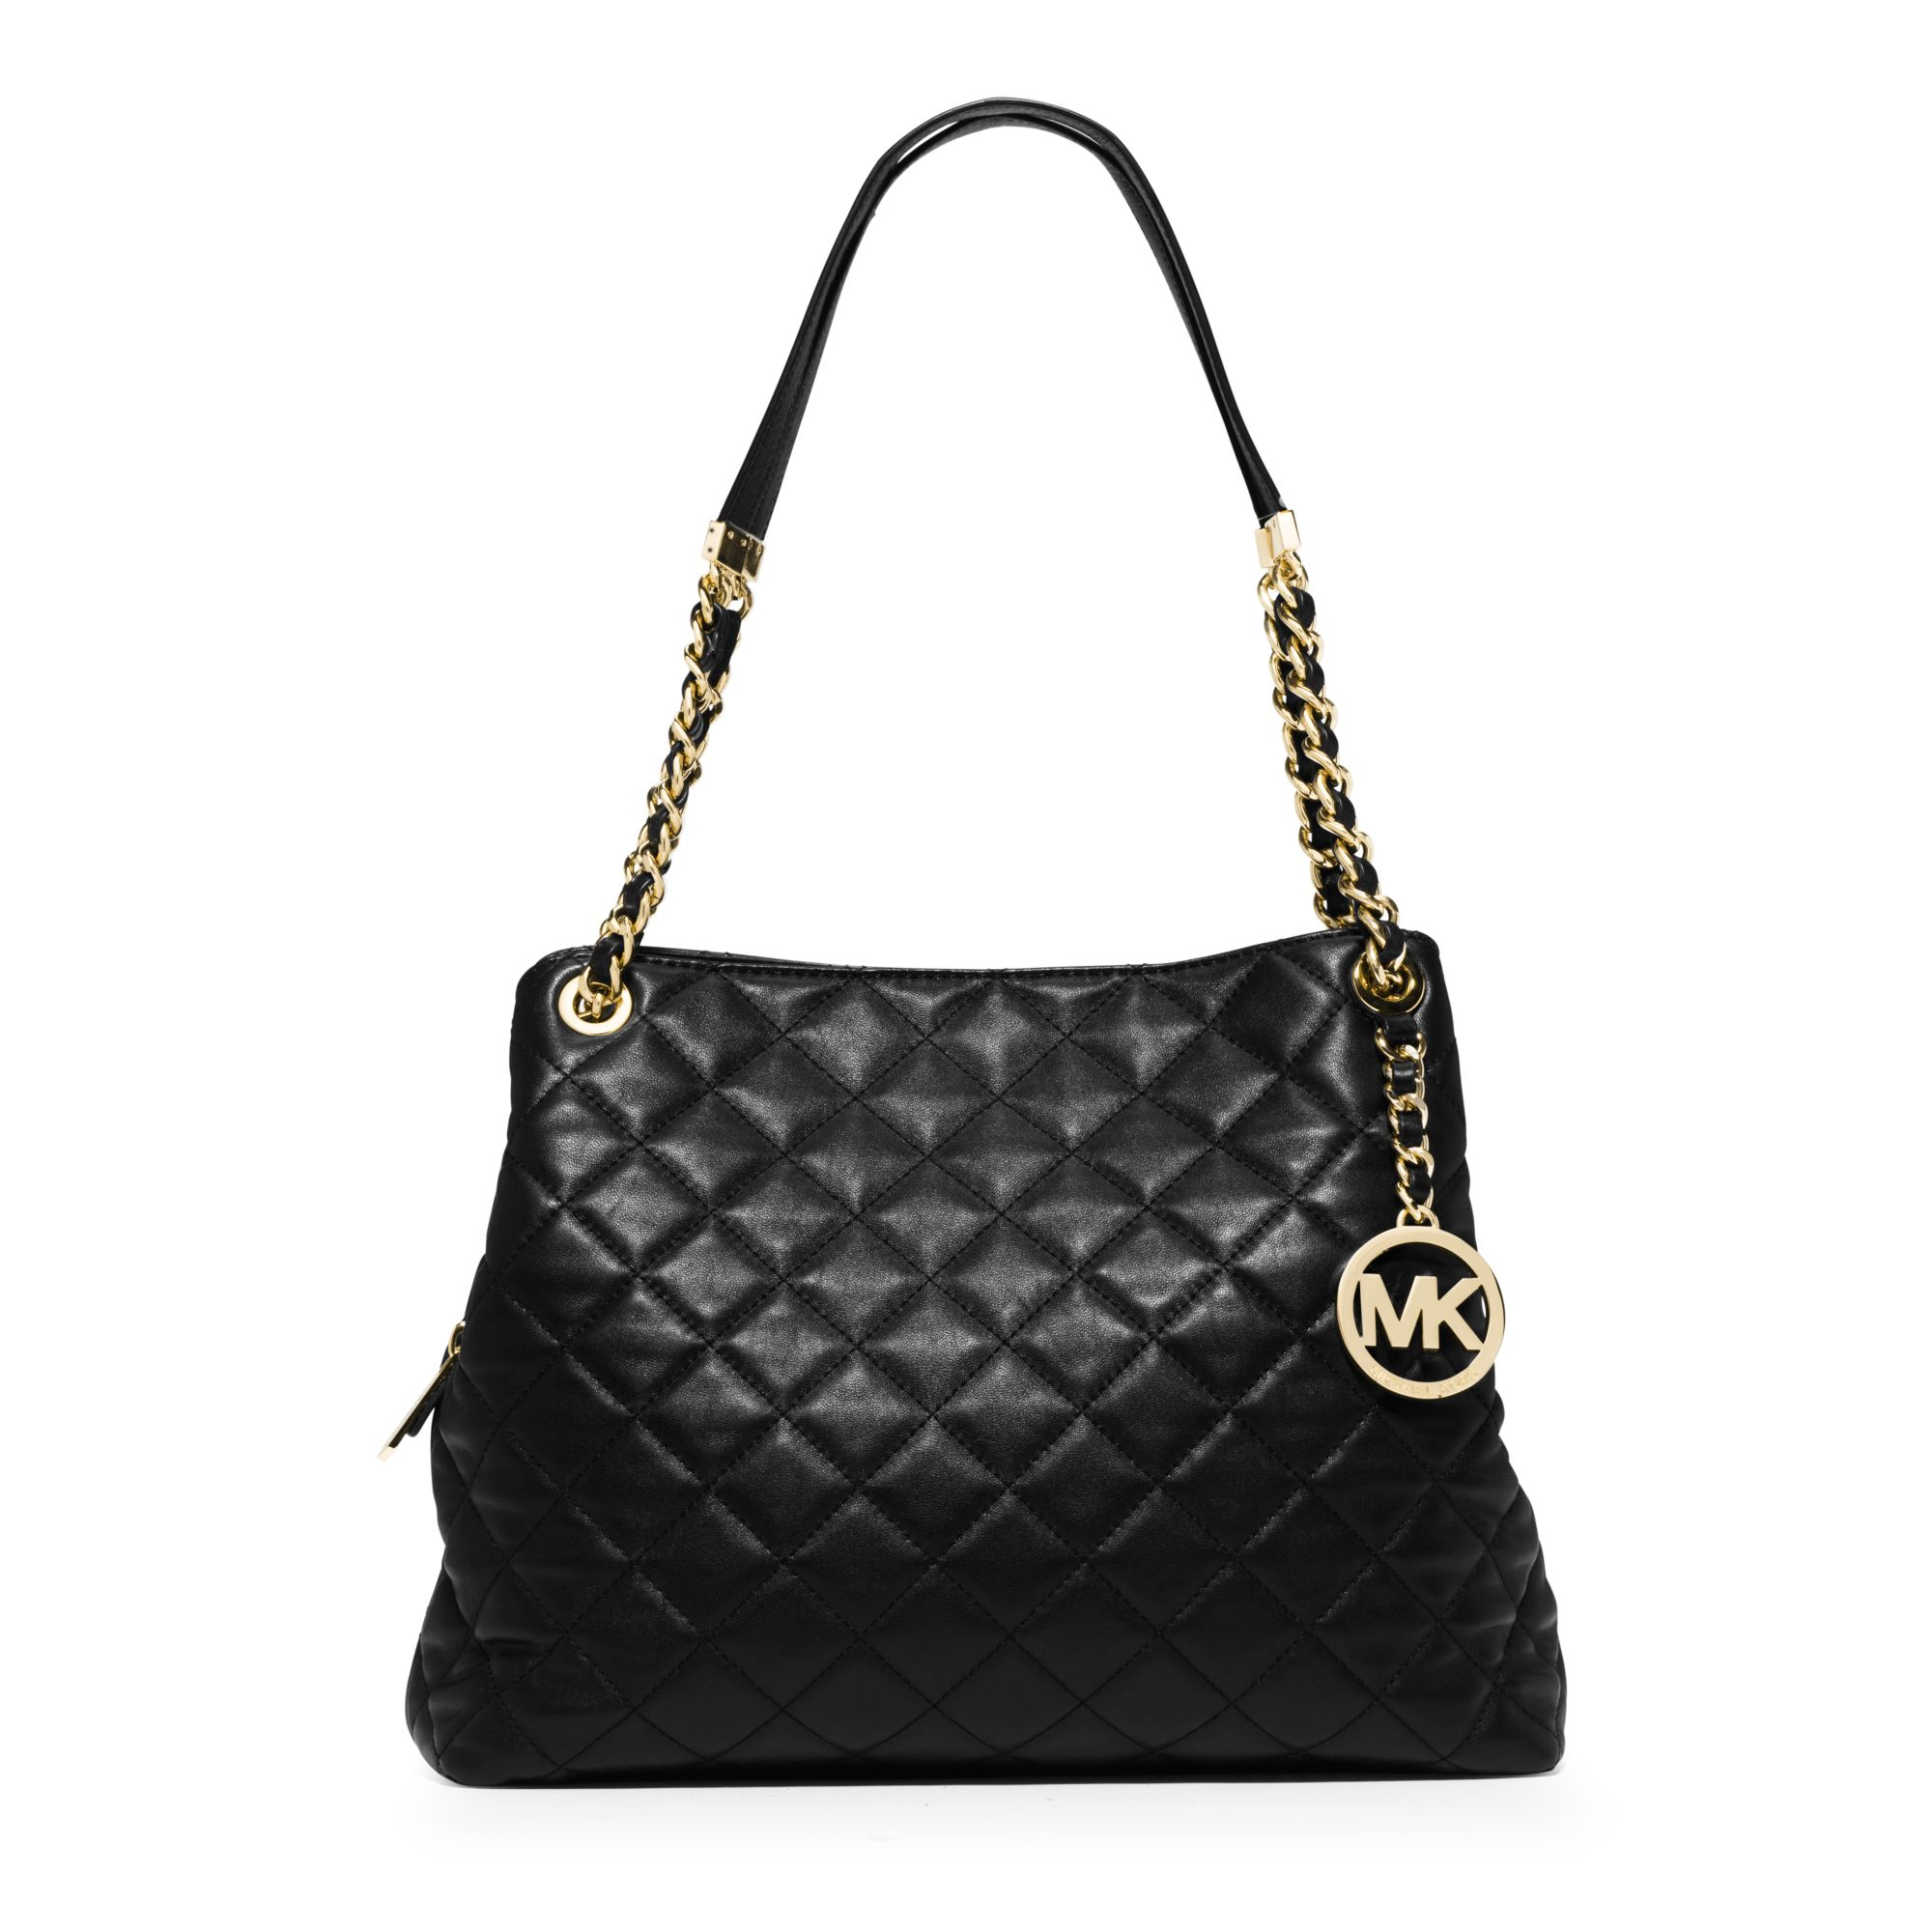 1831f2cc8ba5 Lyst - Michael Kors Susannah Large Quilted-Leather Shoulder Bag in Black